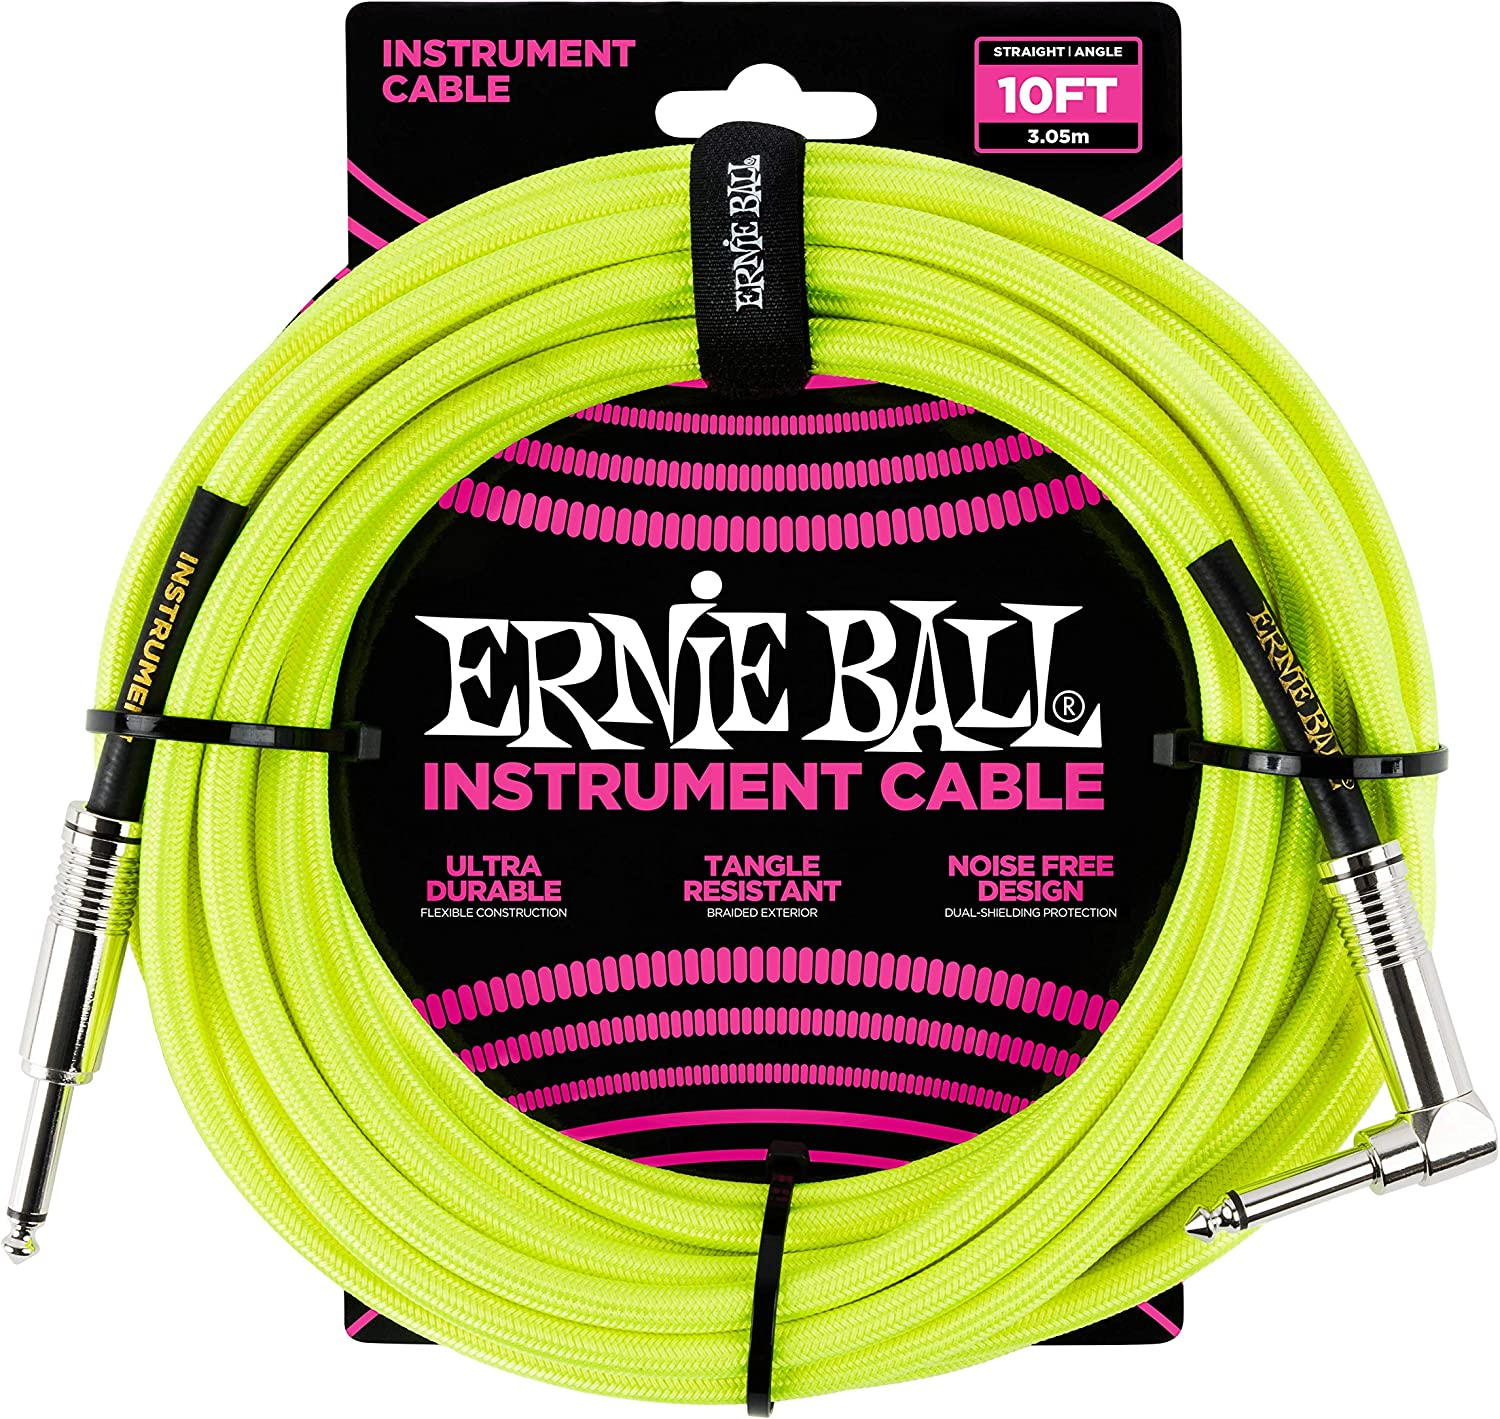 Ernie Ball Instrument Cable, Neon Yellow 10 ft.